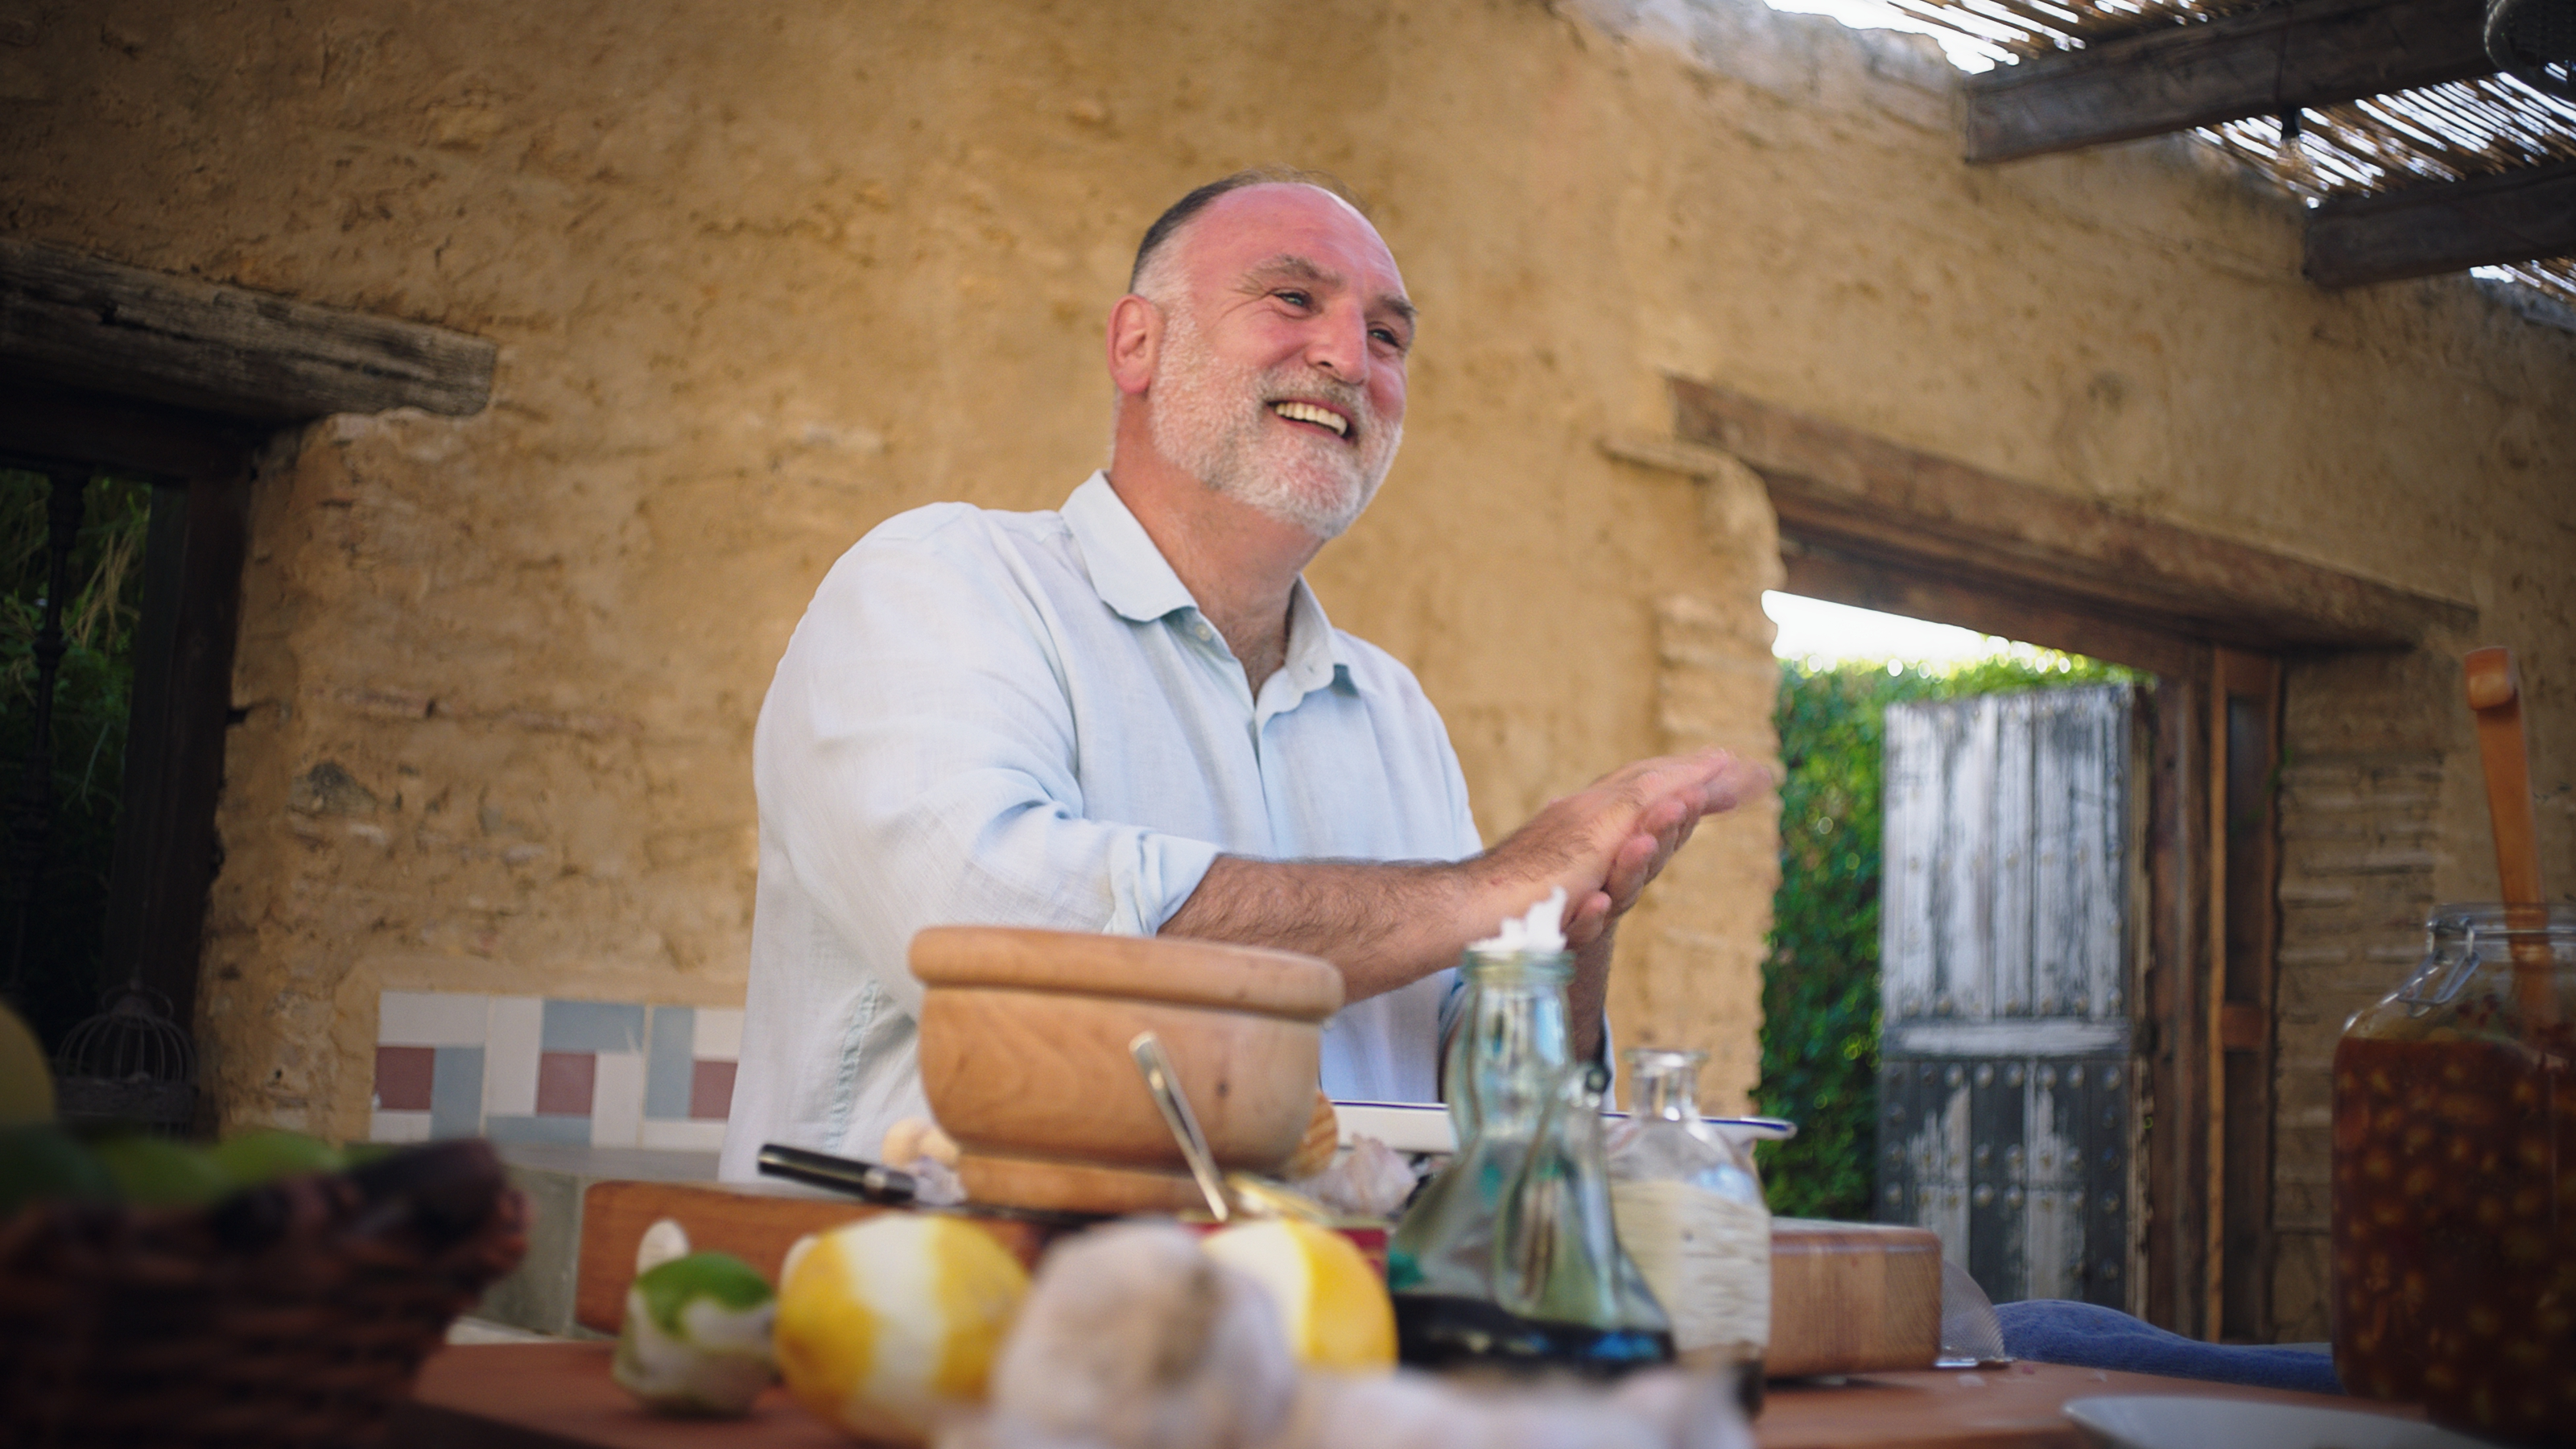 José Andrés starred in a short film Panera shot in Spain to raise awareness for food insecurity